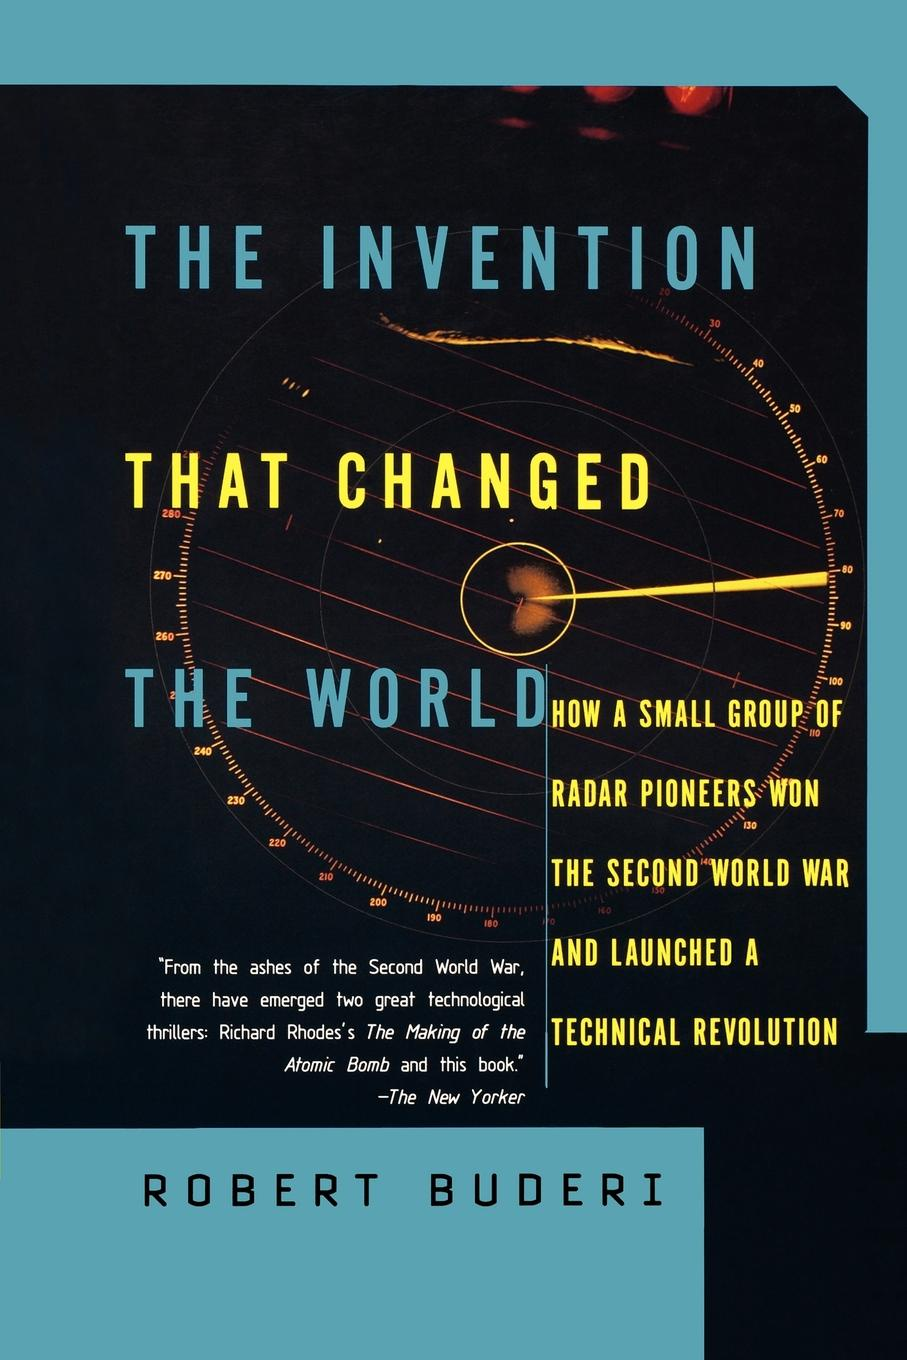 Robert Buderi The Invention That Changed the World. How a Small Group of Radar Pioneers Won the Second World War and Launched a Technological Revolution